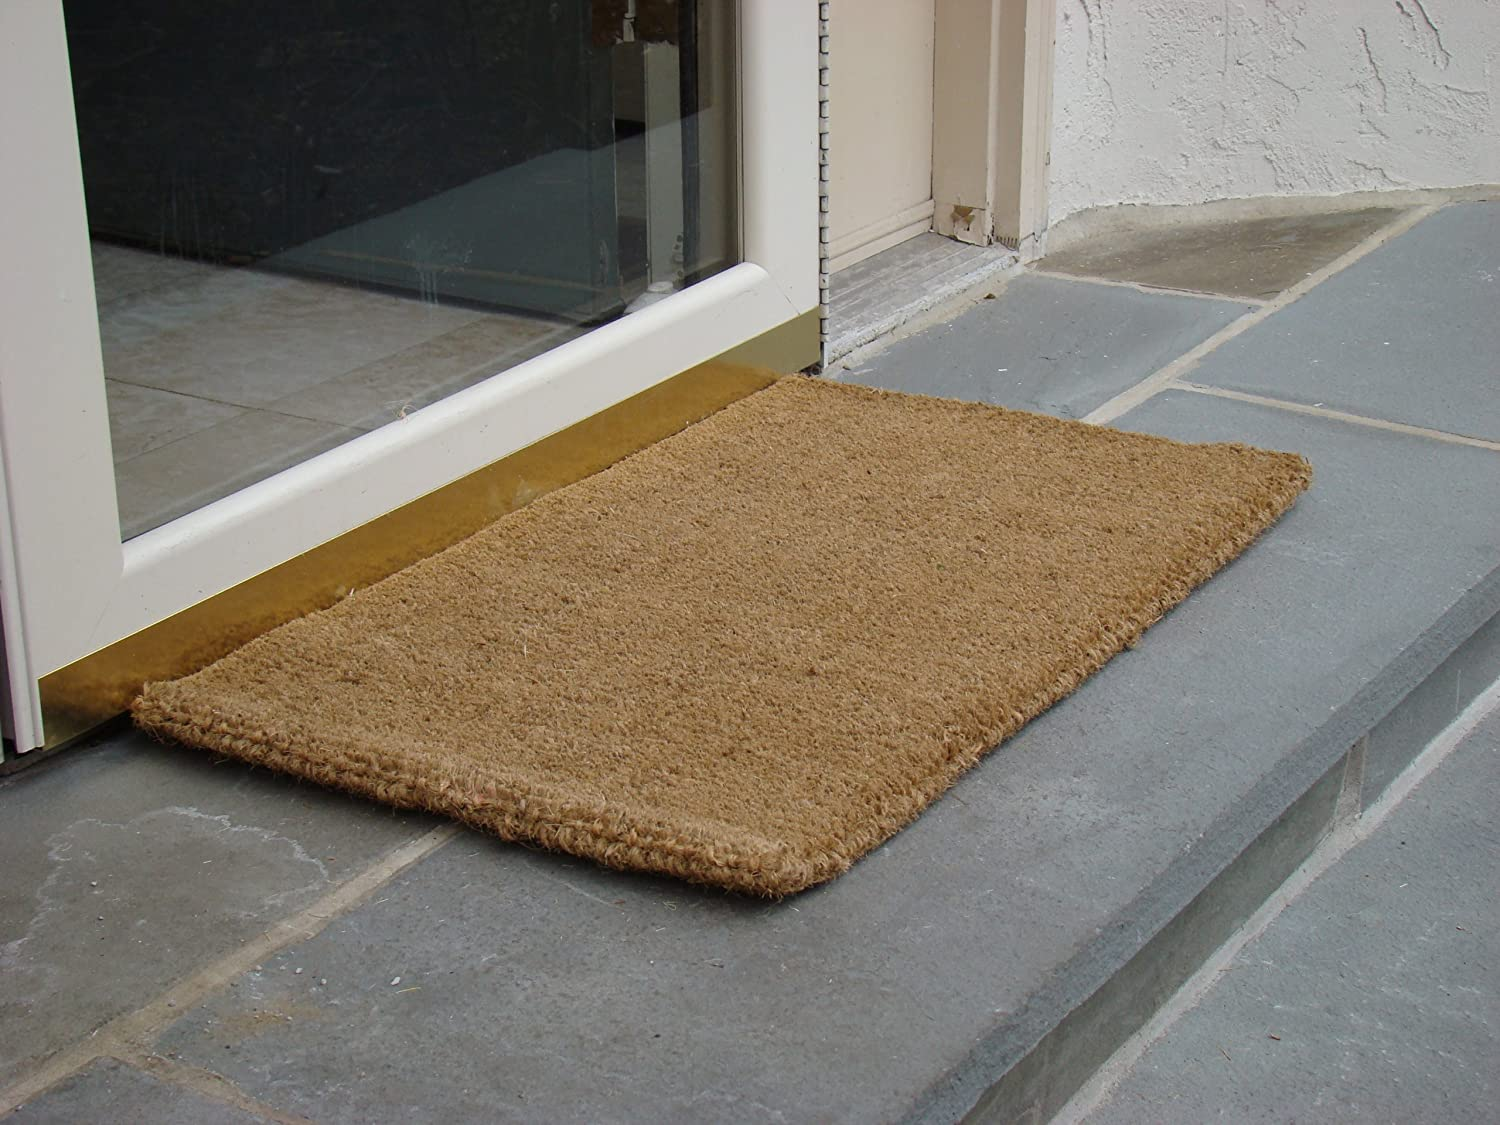 kempf natural coco coir doormat 18 by 30 by 1inch new free shipping